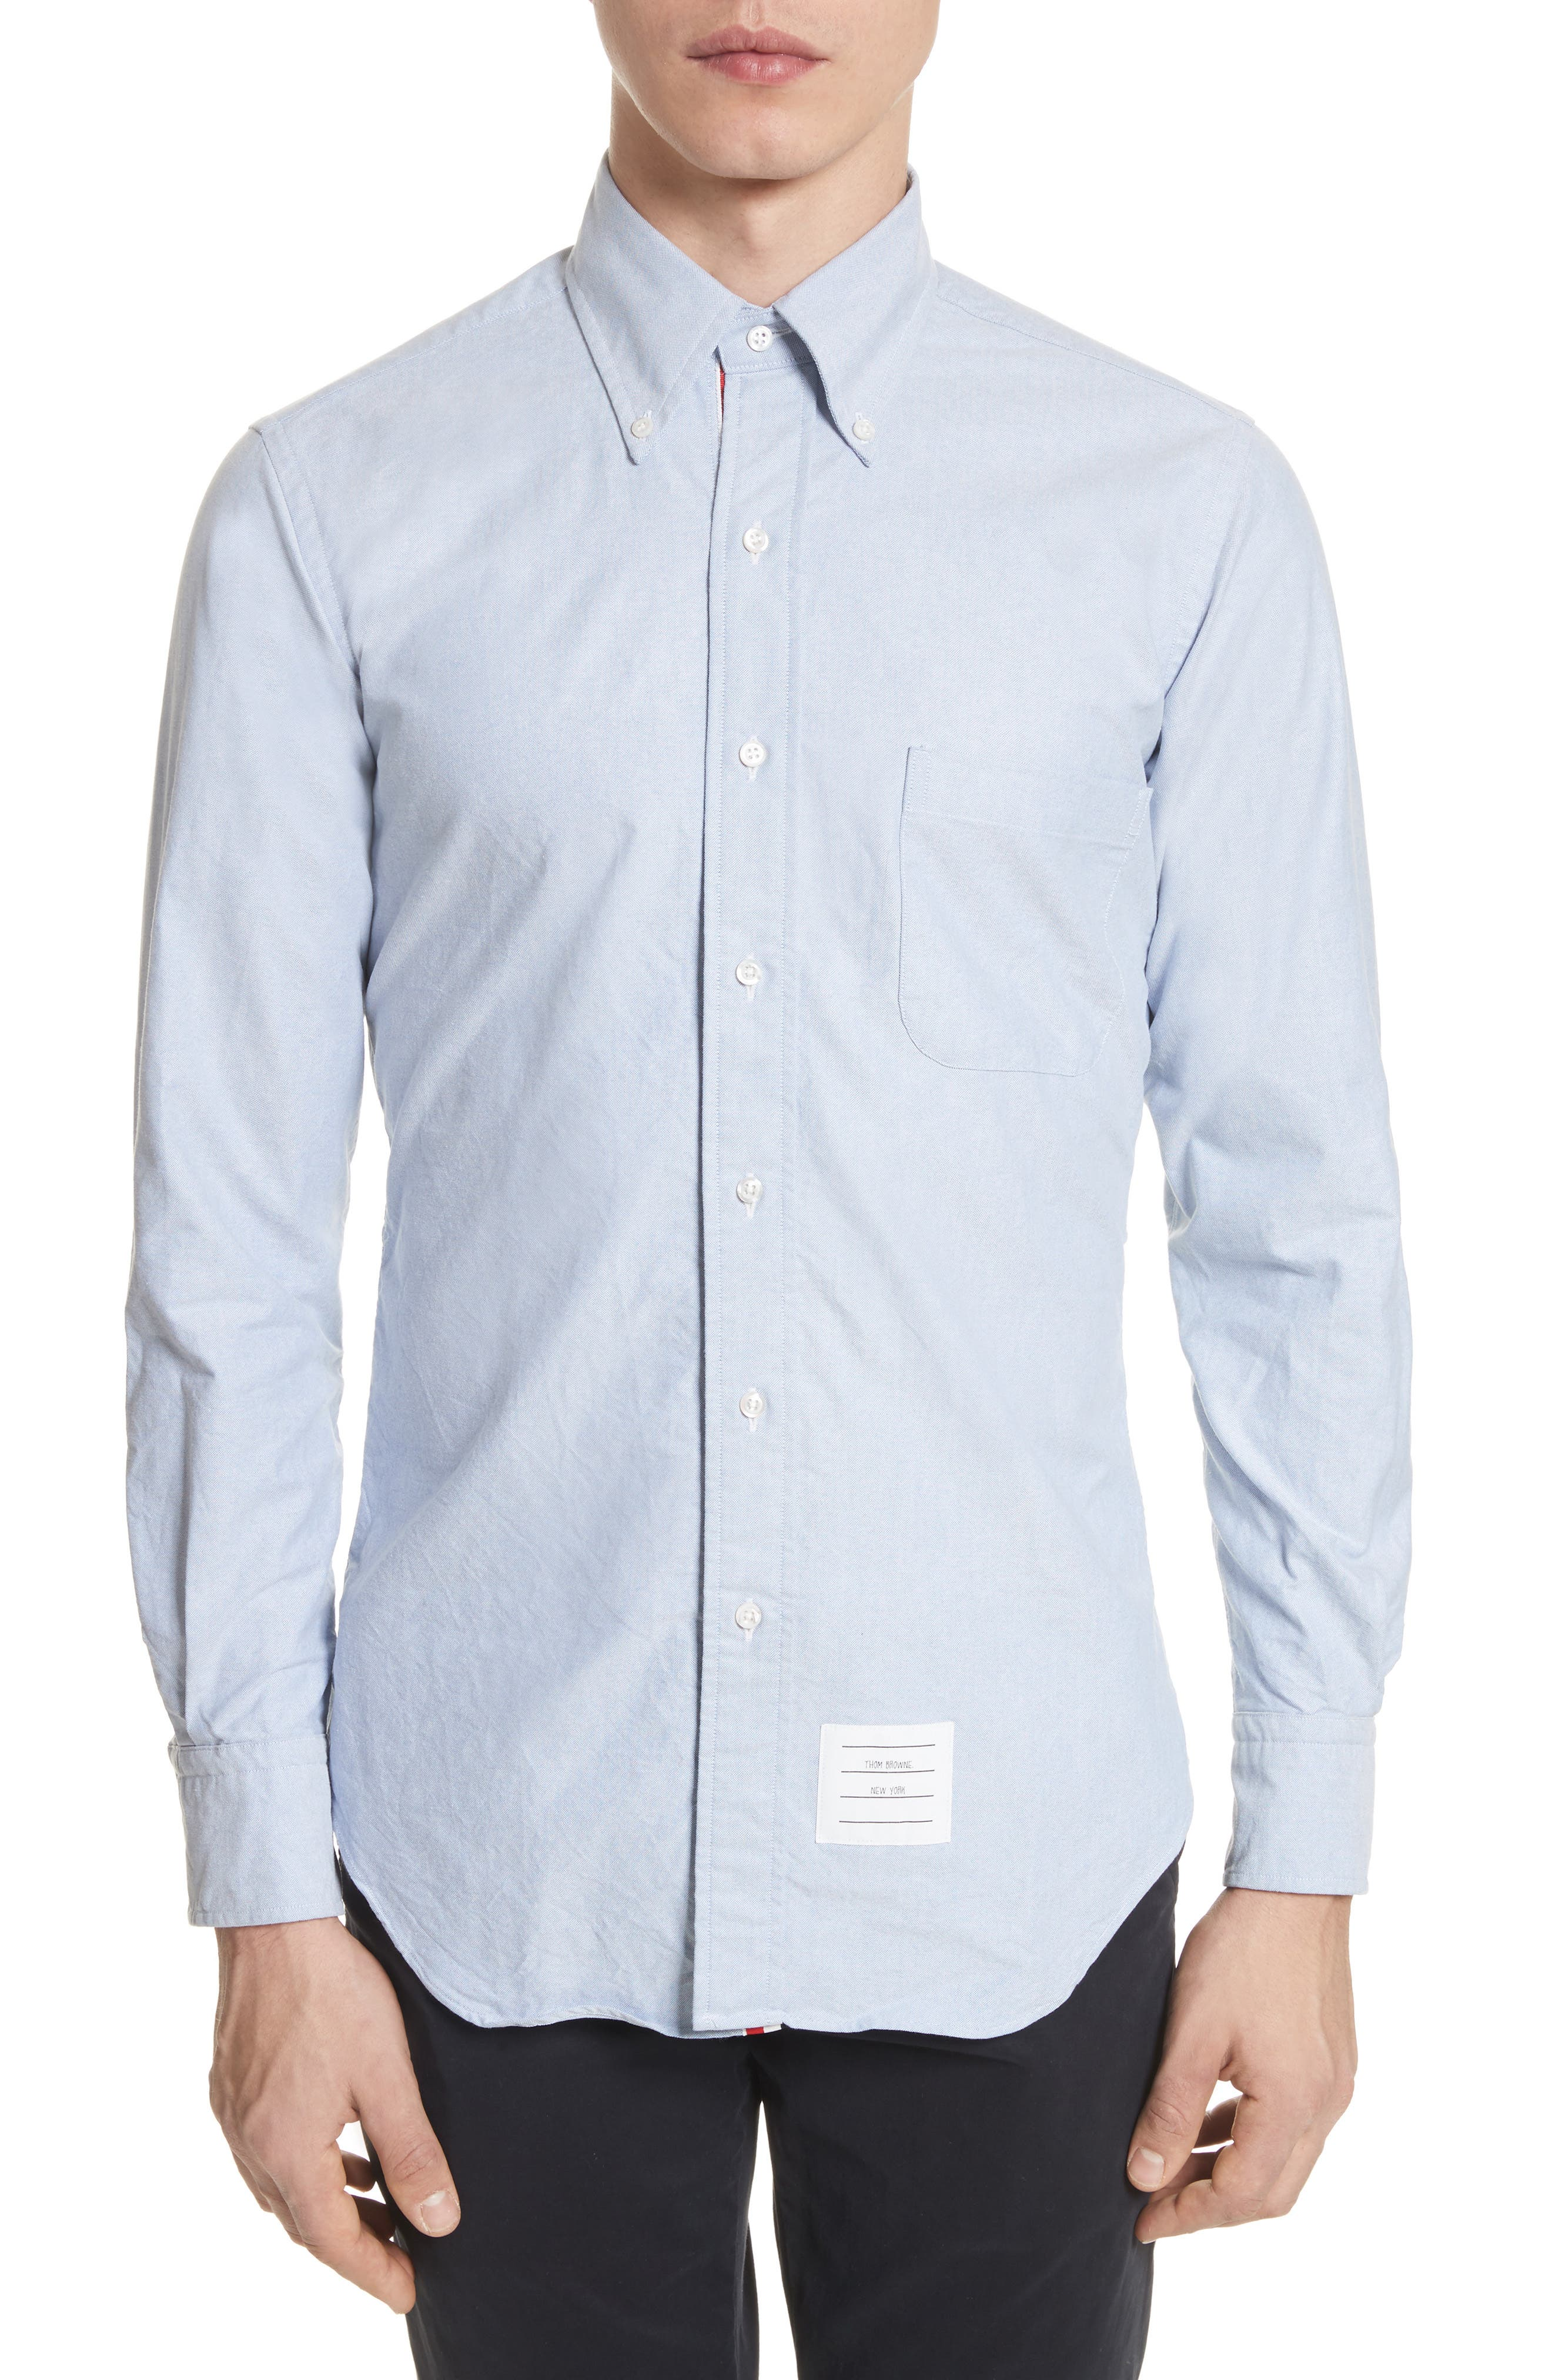 Extra Trim Fit Oxford Shirt with Grosgrain Trim,                             Main thumbnail 1, color,                             Light Blue